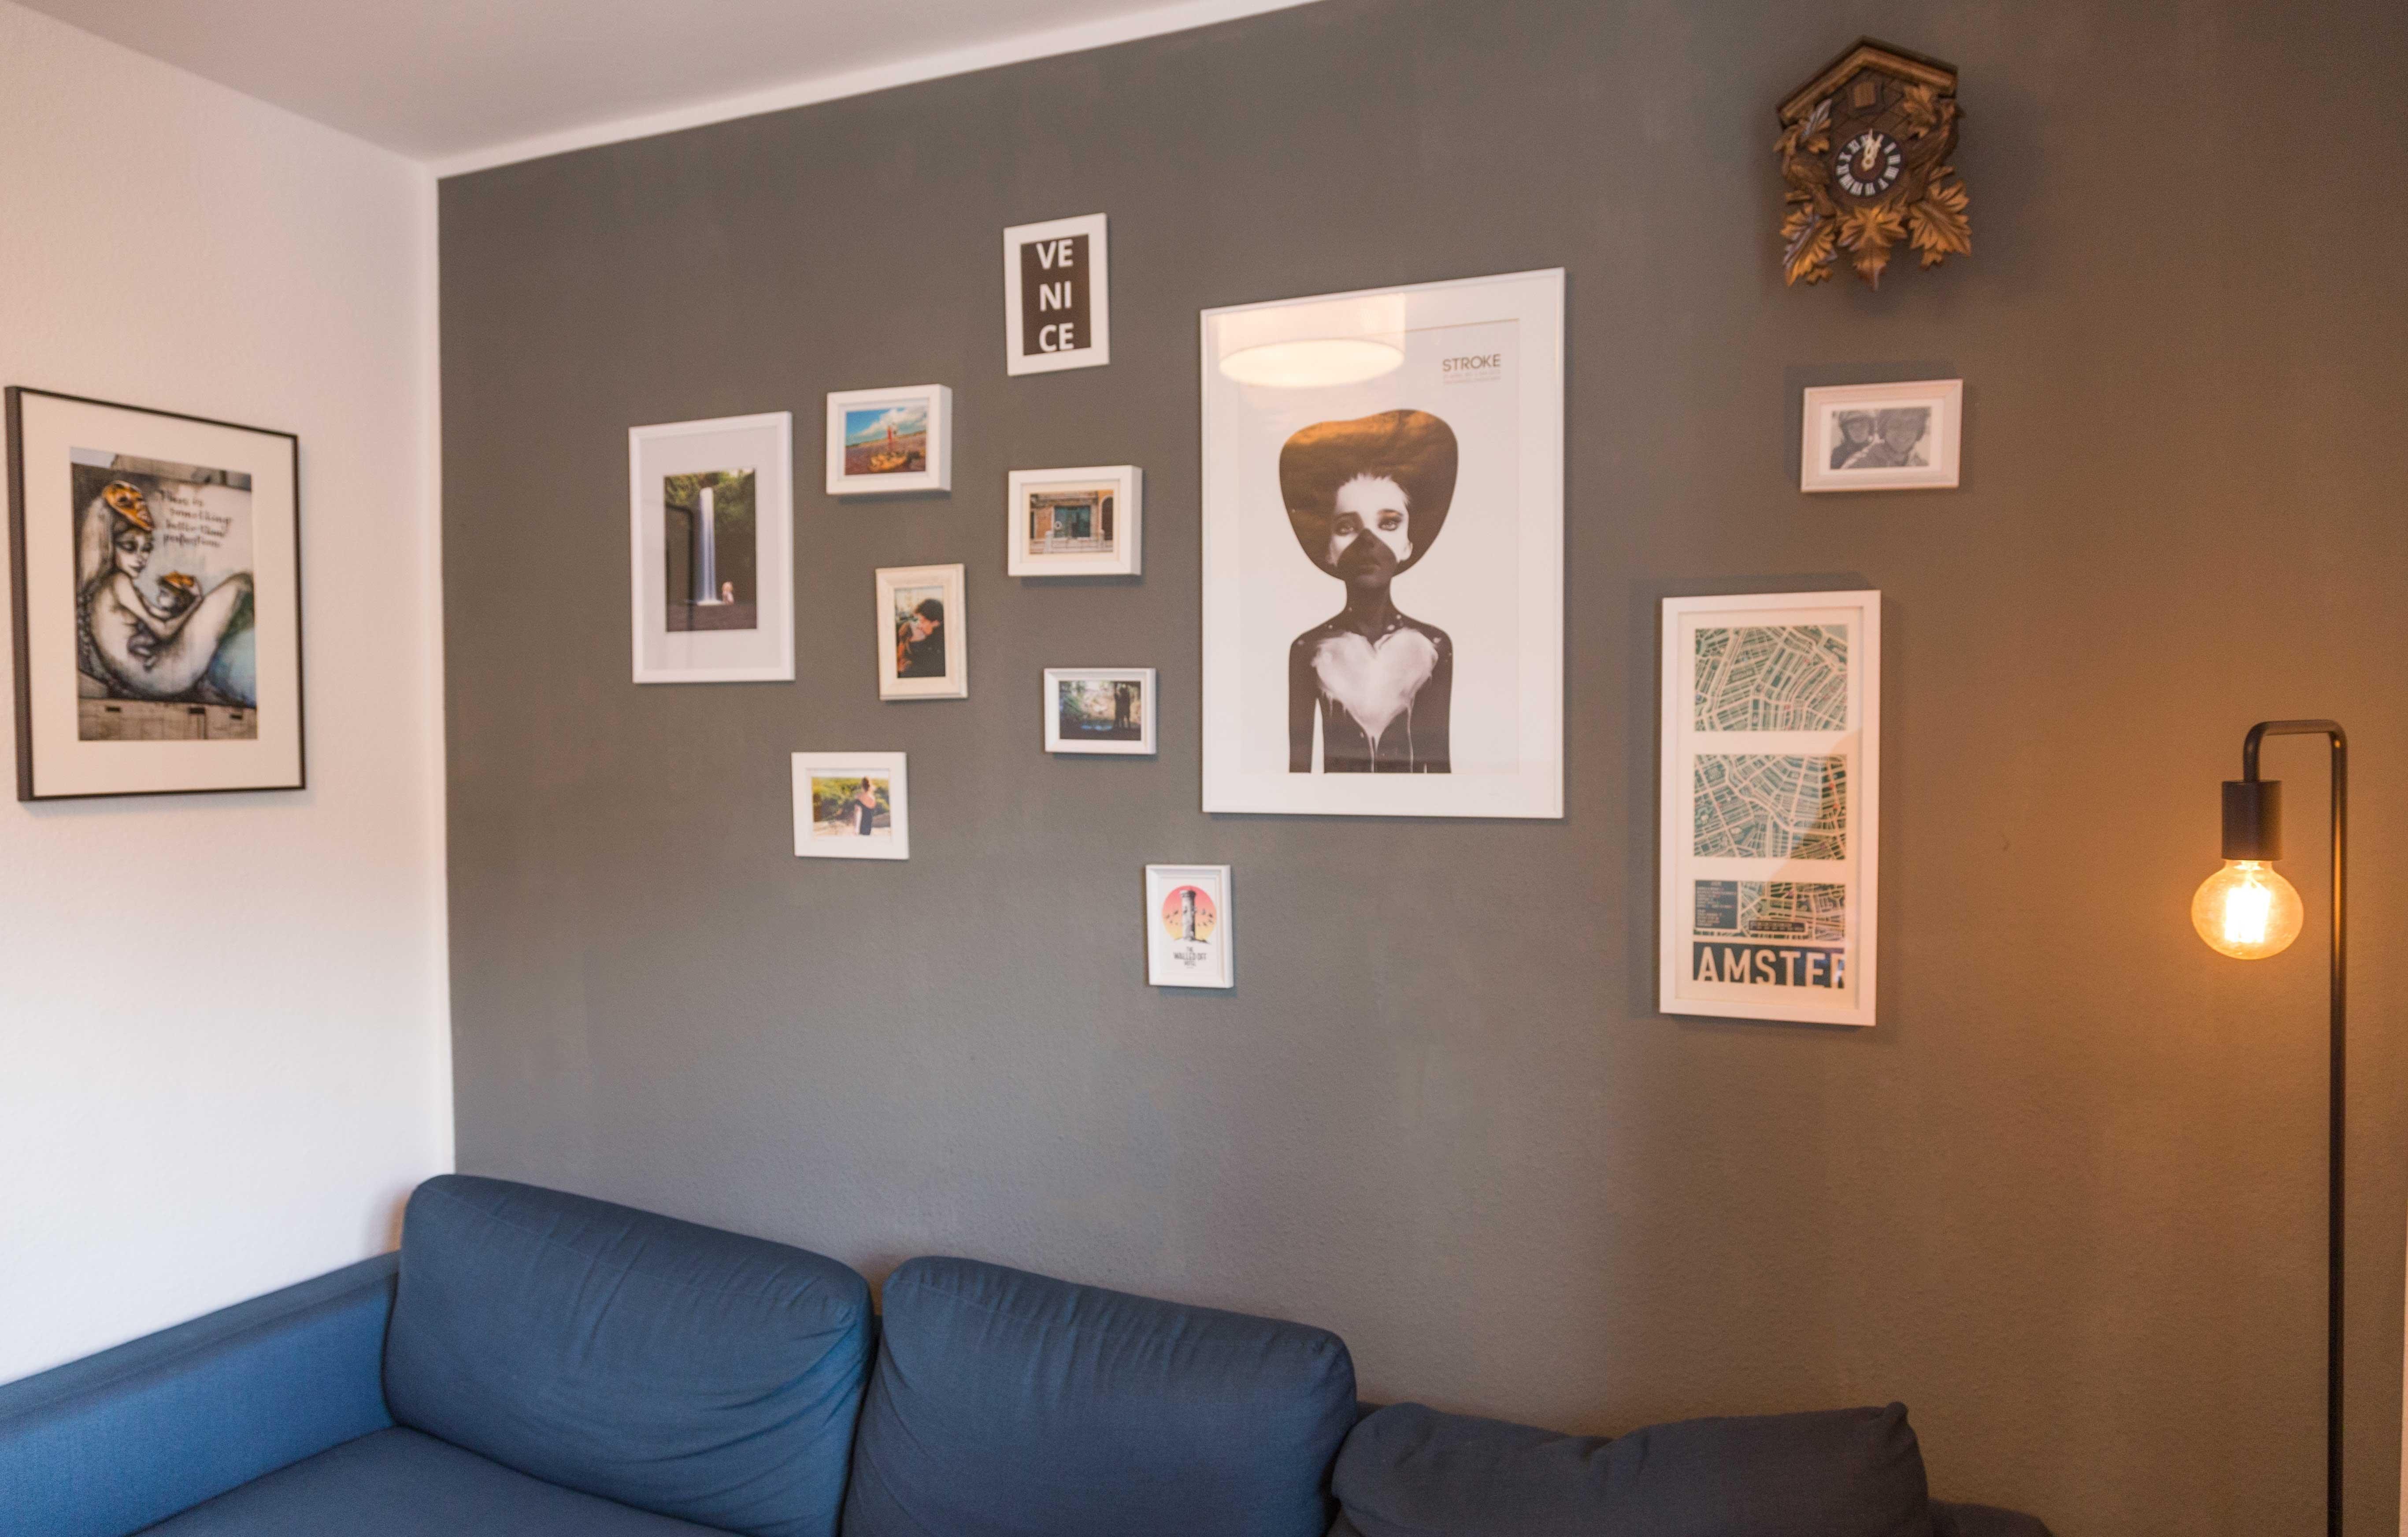 Small #gallery #herakut #banksy #streetart #couch #cozy